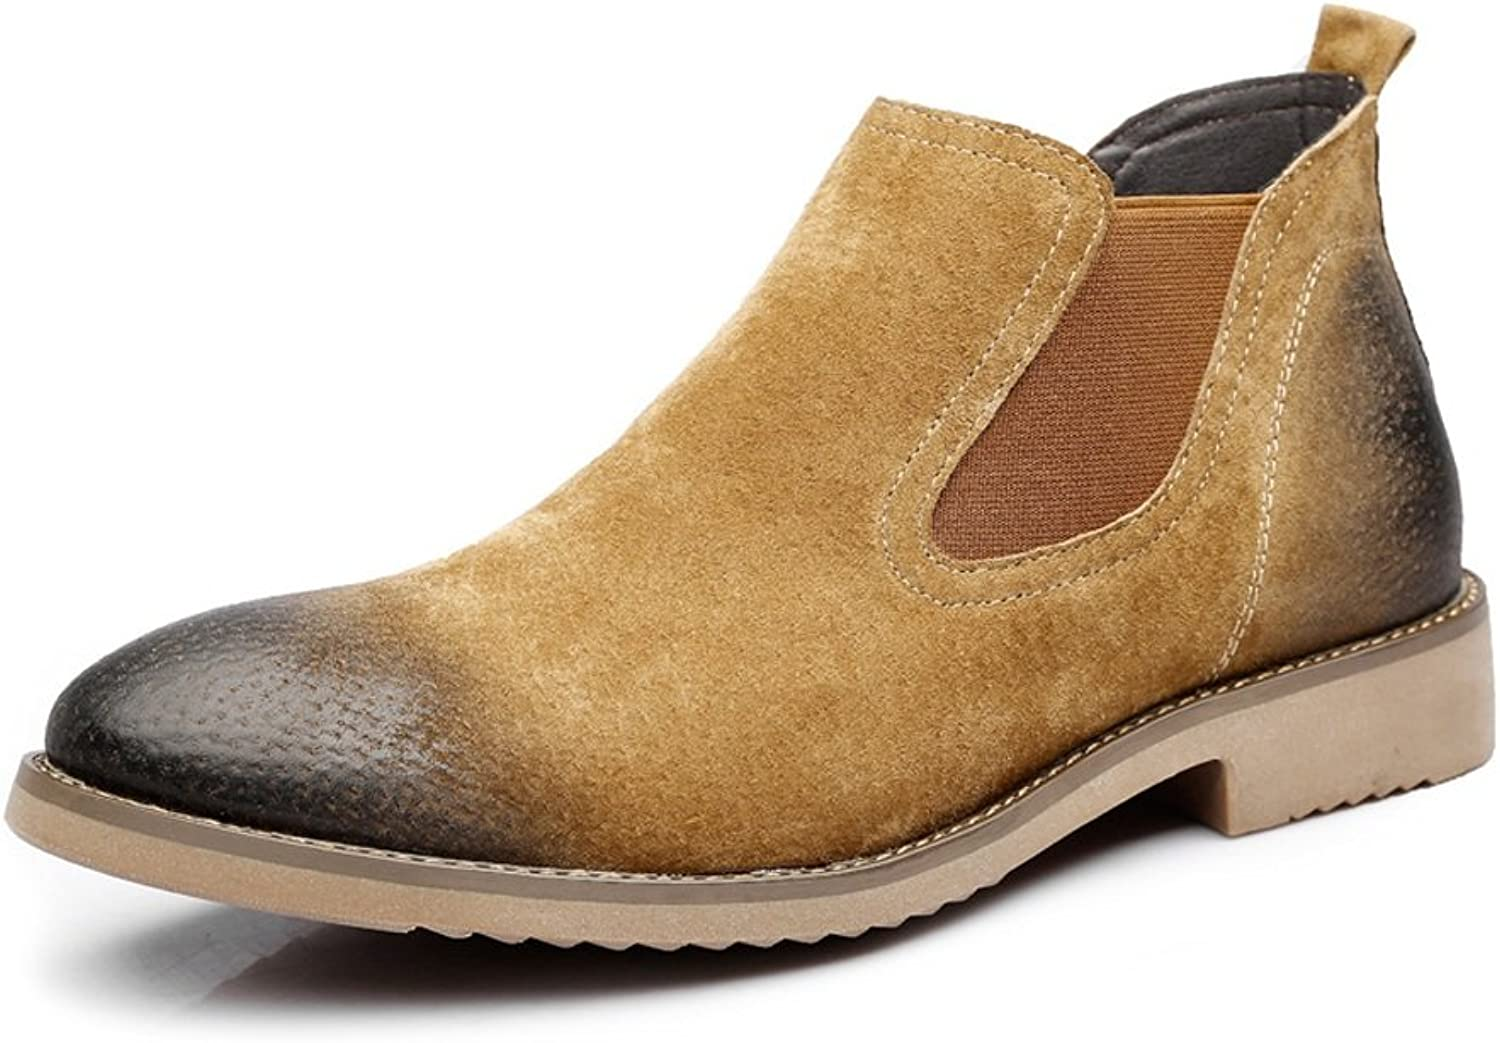 Men's Slip-on Ankle Boots Dual Flexible Plate Genuine Leather Outsole shoes